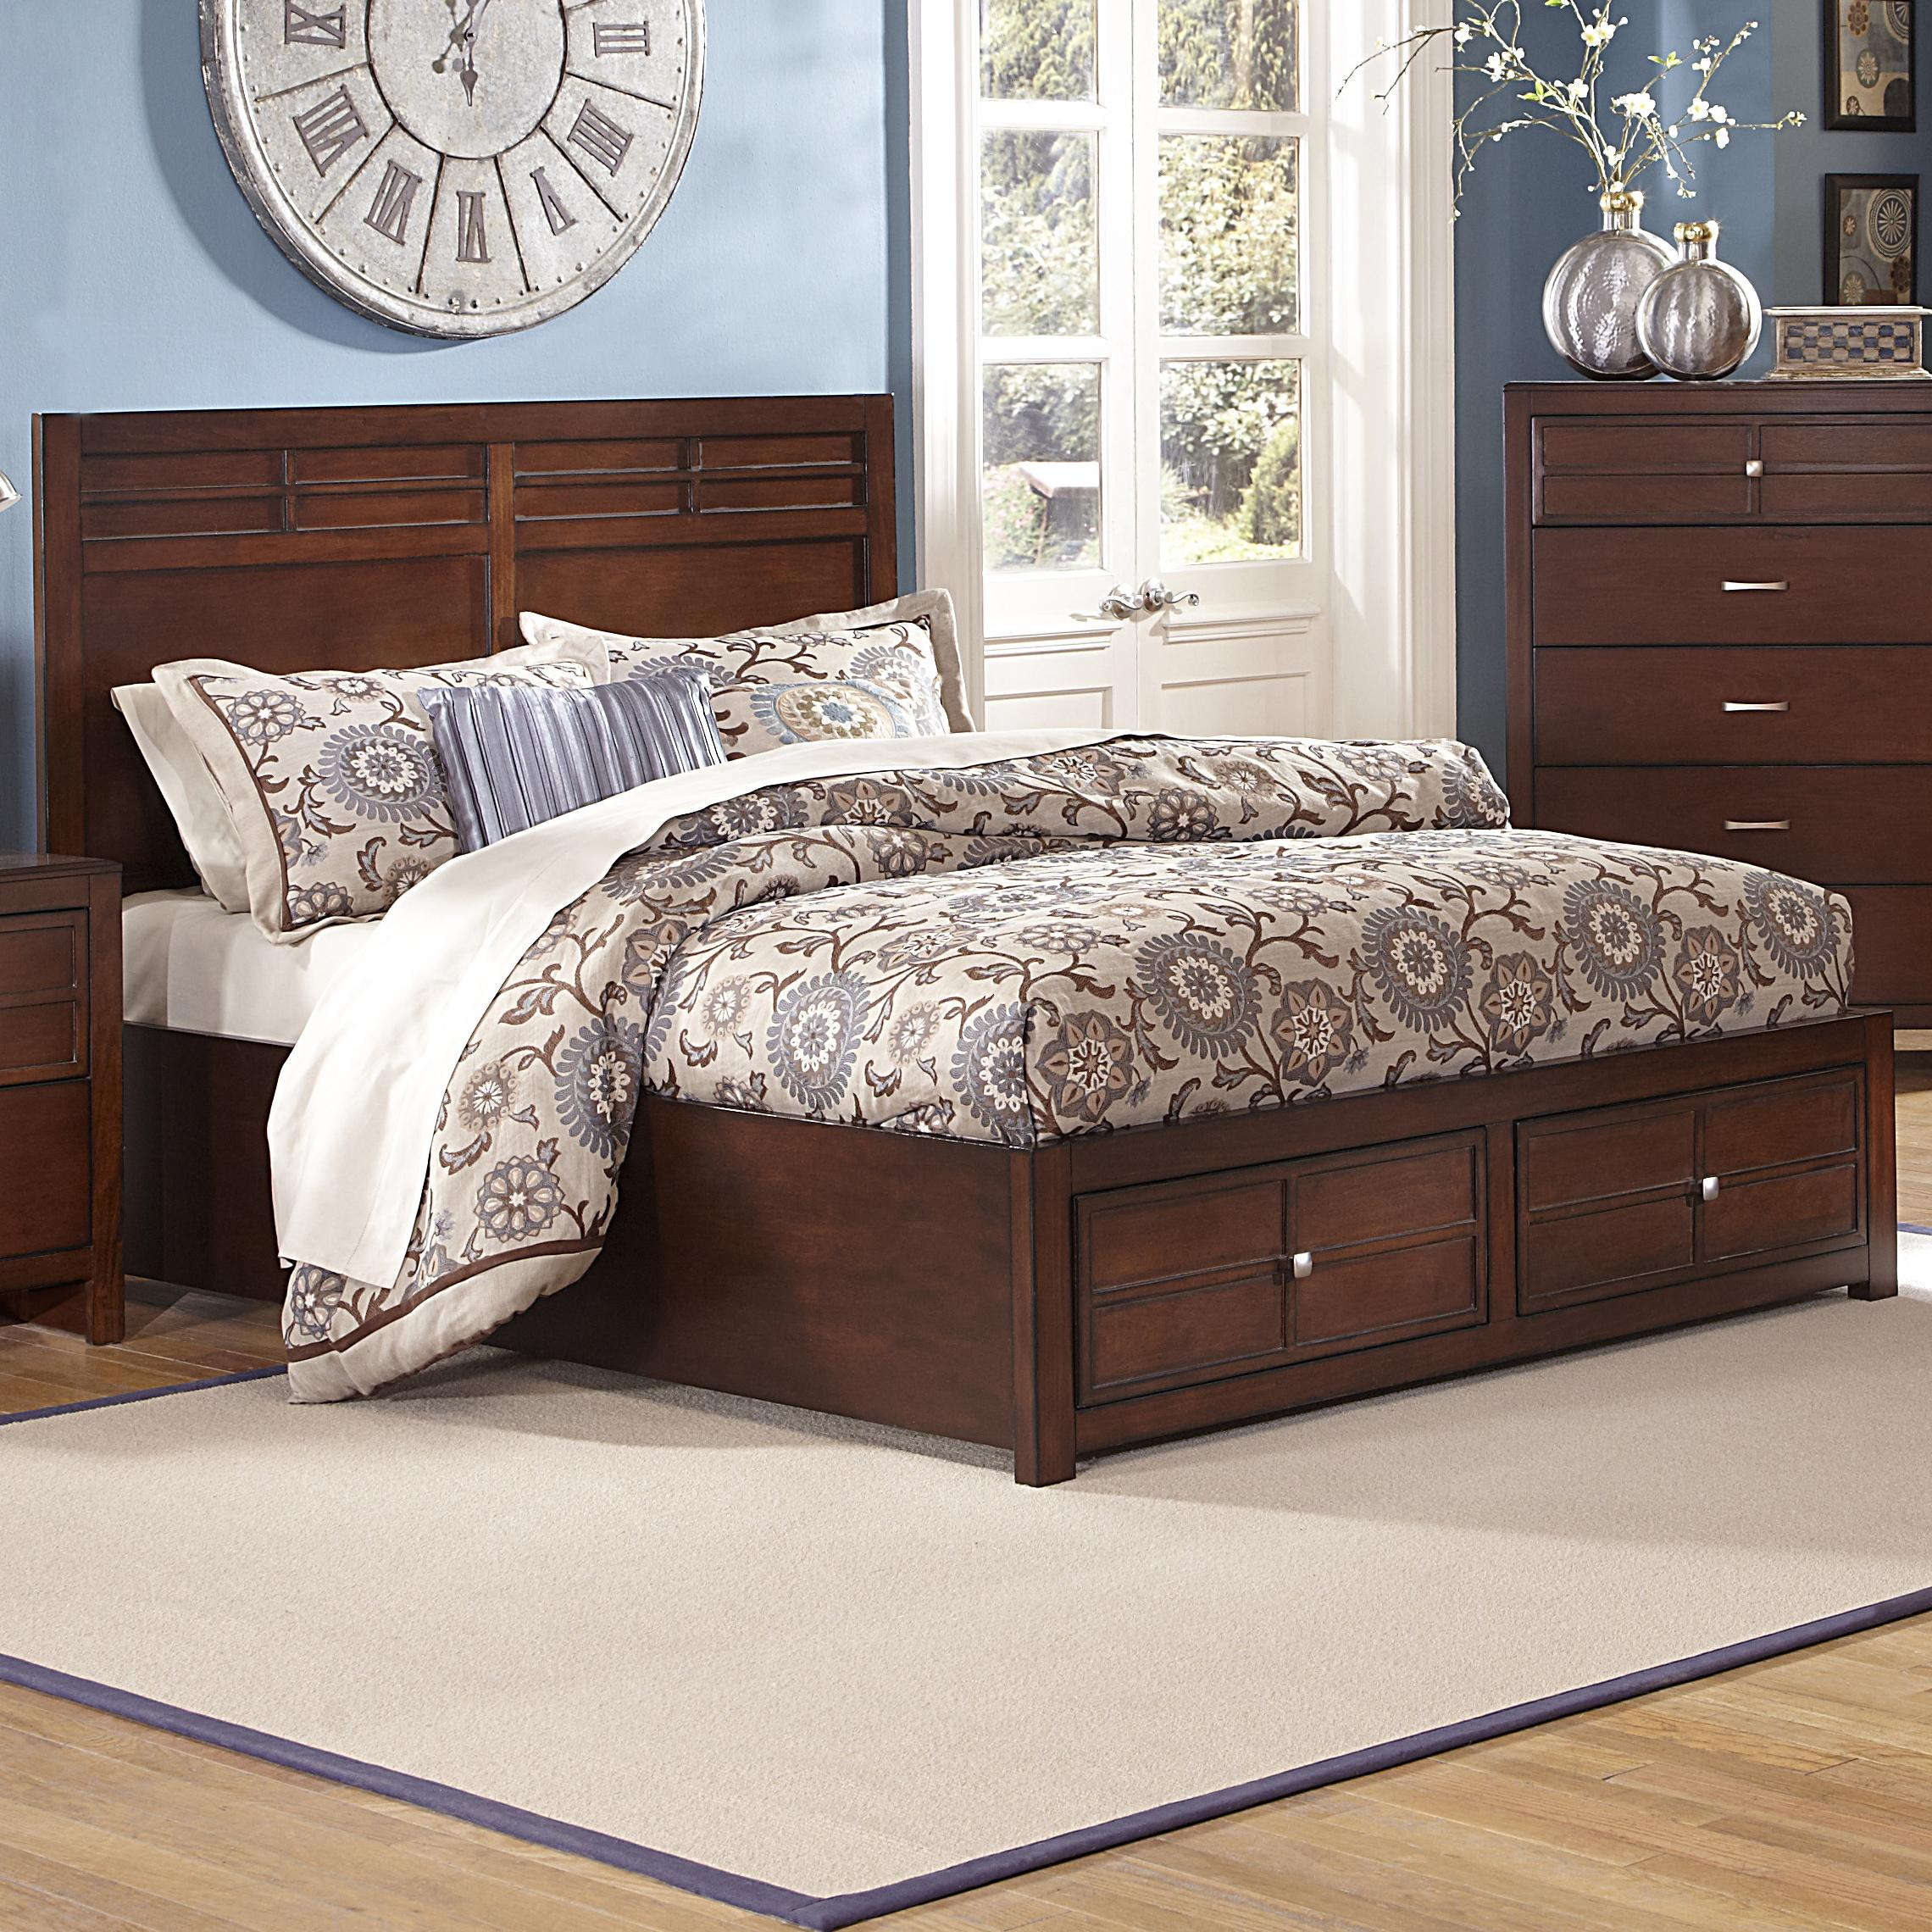 King Low Profile Bed with Storage Footboard by New Classic